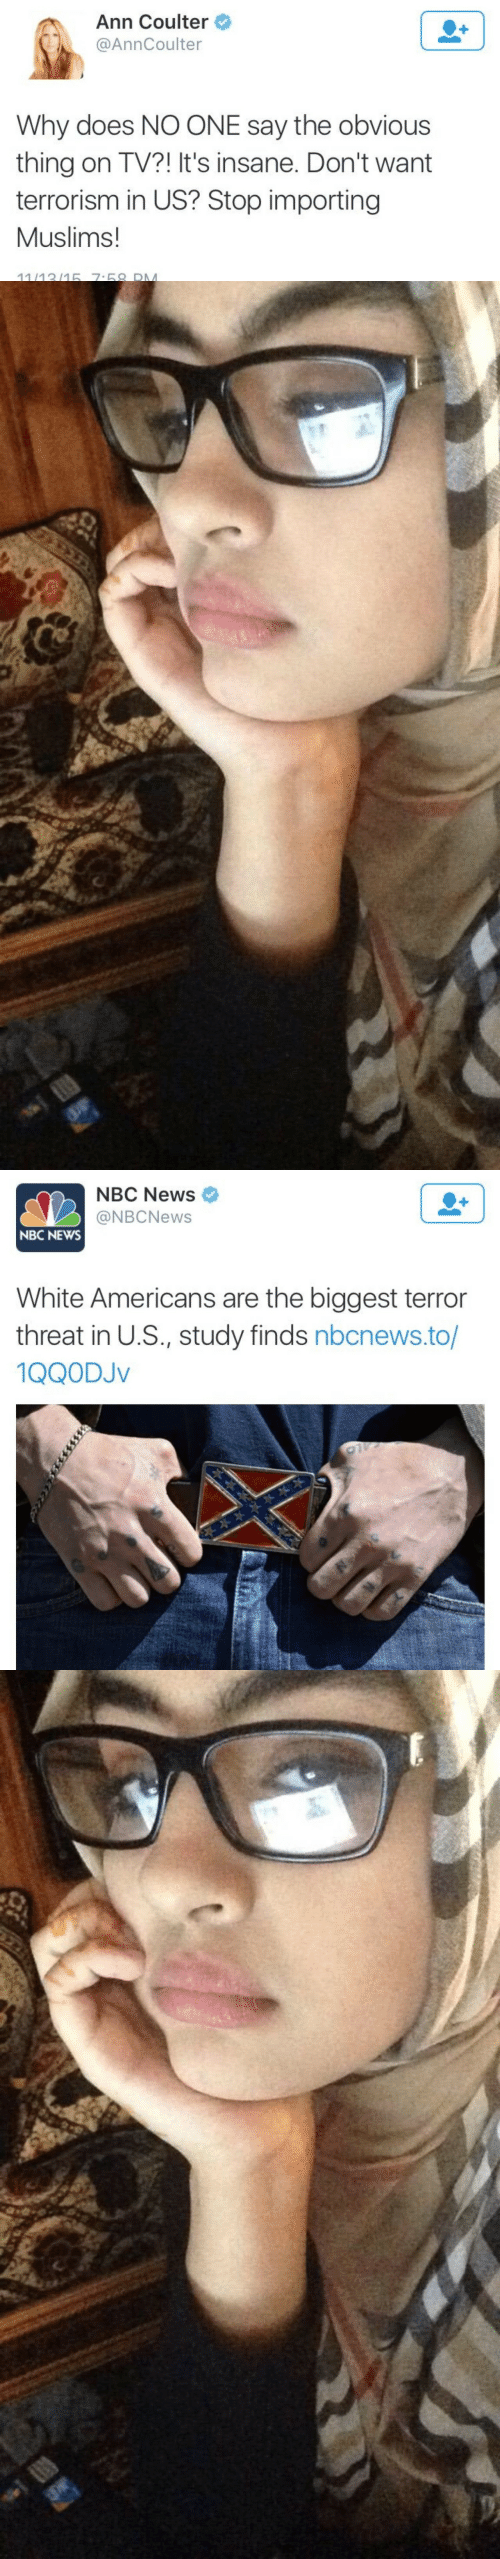 News, Nbc News, and Nbcnews: Ann Coulter  @AnnCoulter  Why does NO ONE say the obvious  thing on TV?! It's insane. Don't want  terrorism in US? Stop importing  Muslims!  11/1315 7-68 DM   NBC News  @NBCNews  NBC NEWS  White Americans are the biggest terror  threat in U.S., study finds nbcnews.to/  1QQODJv